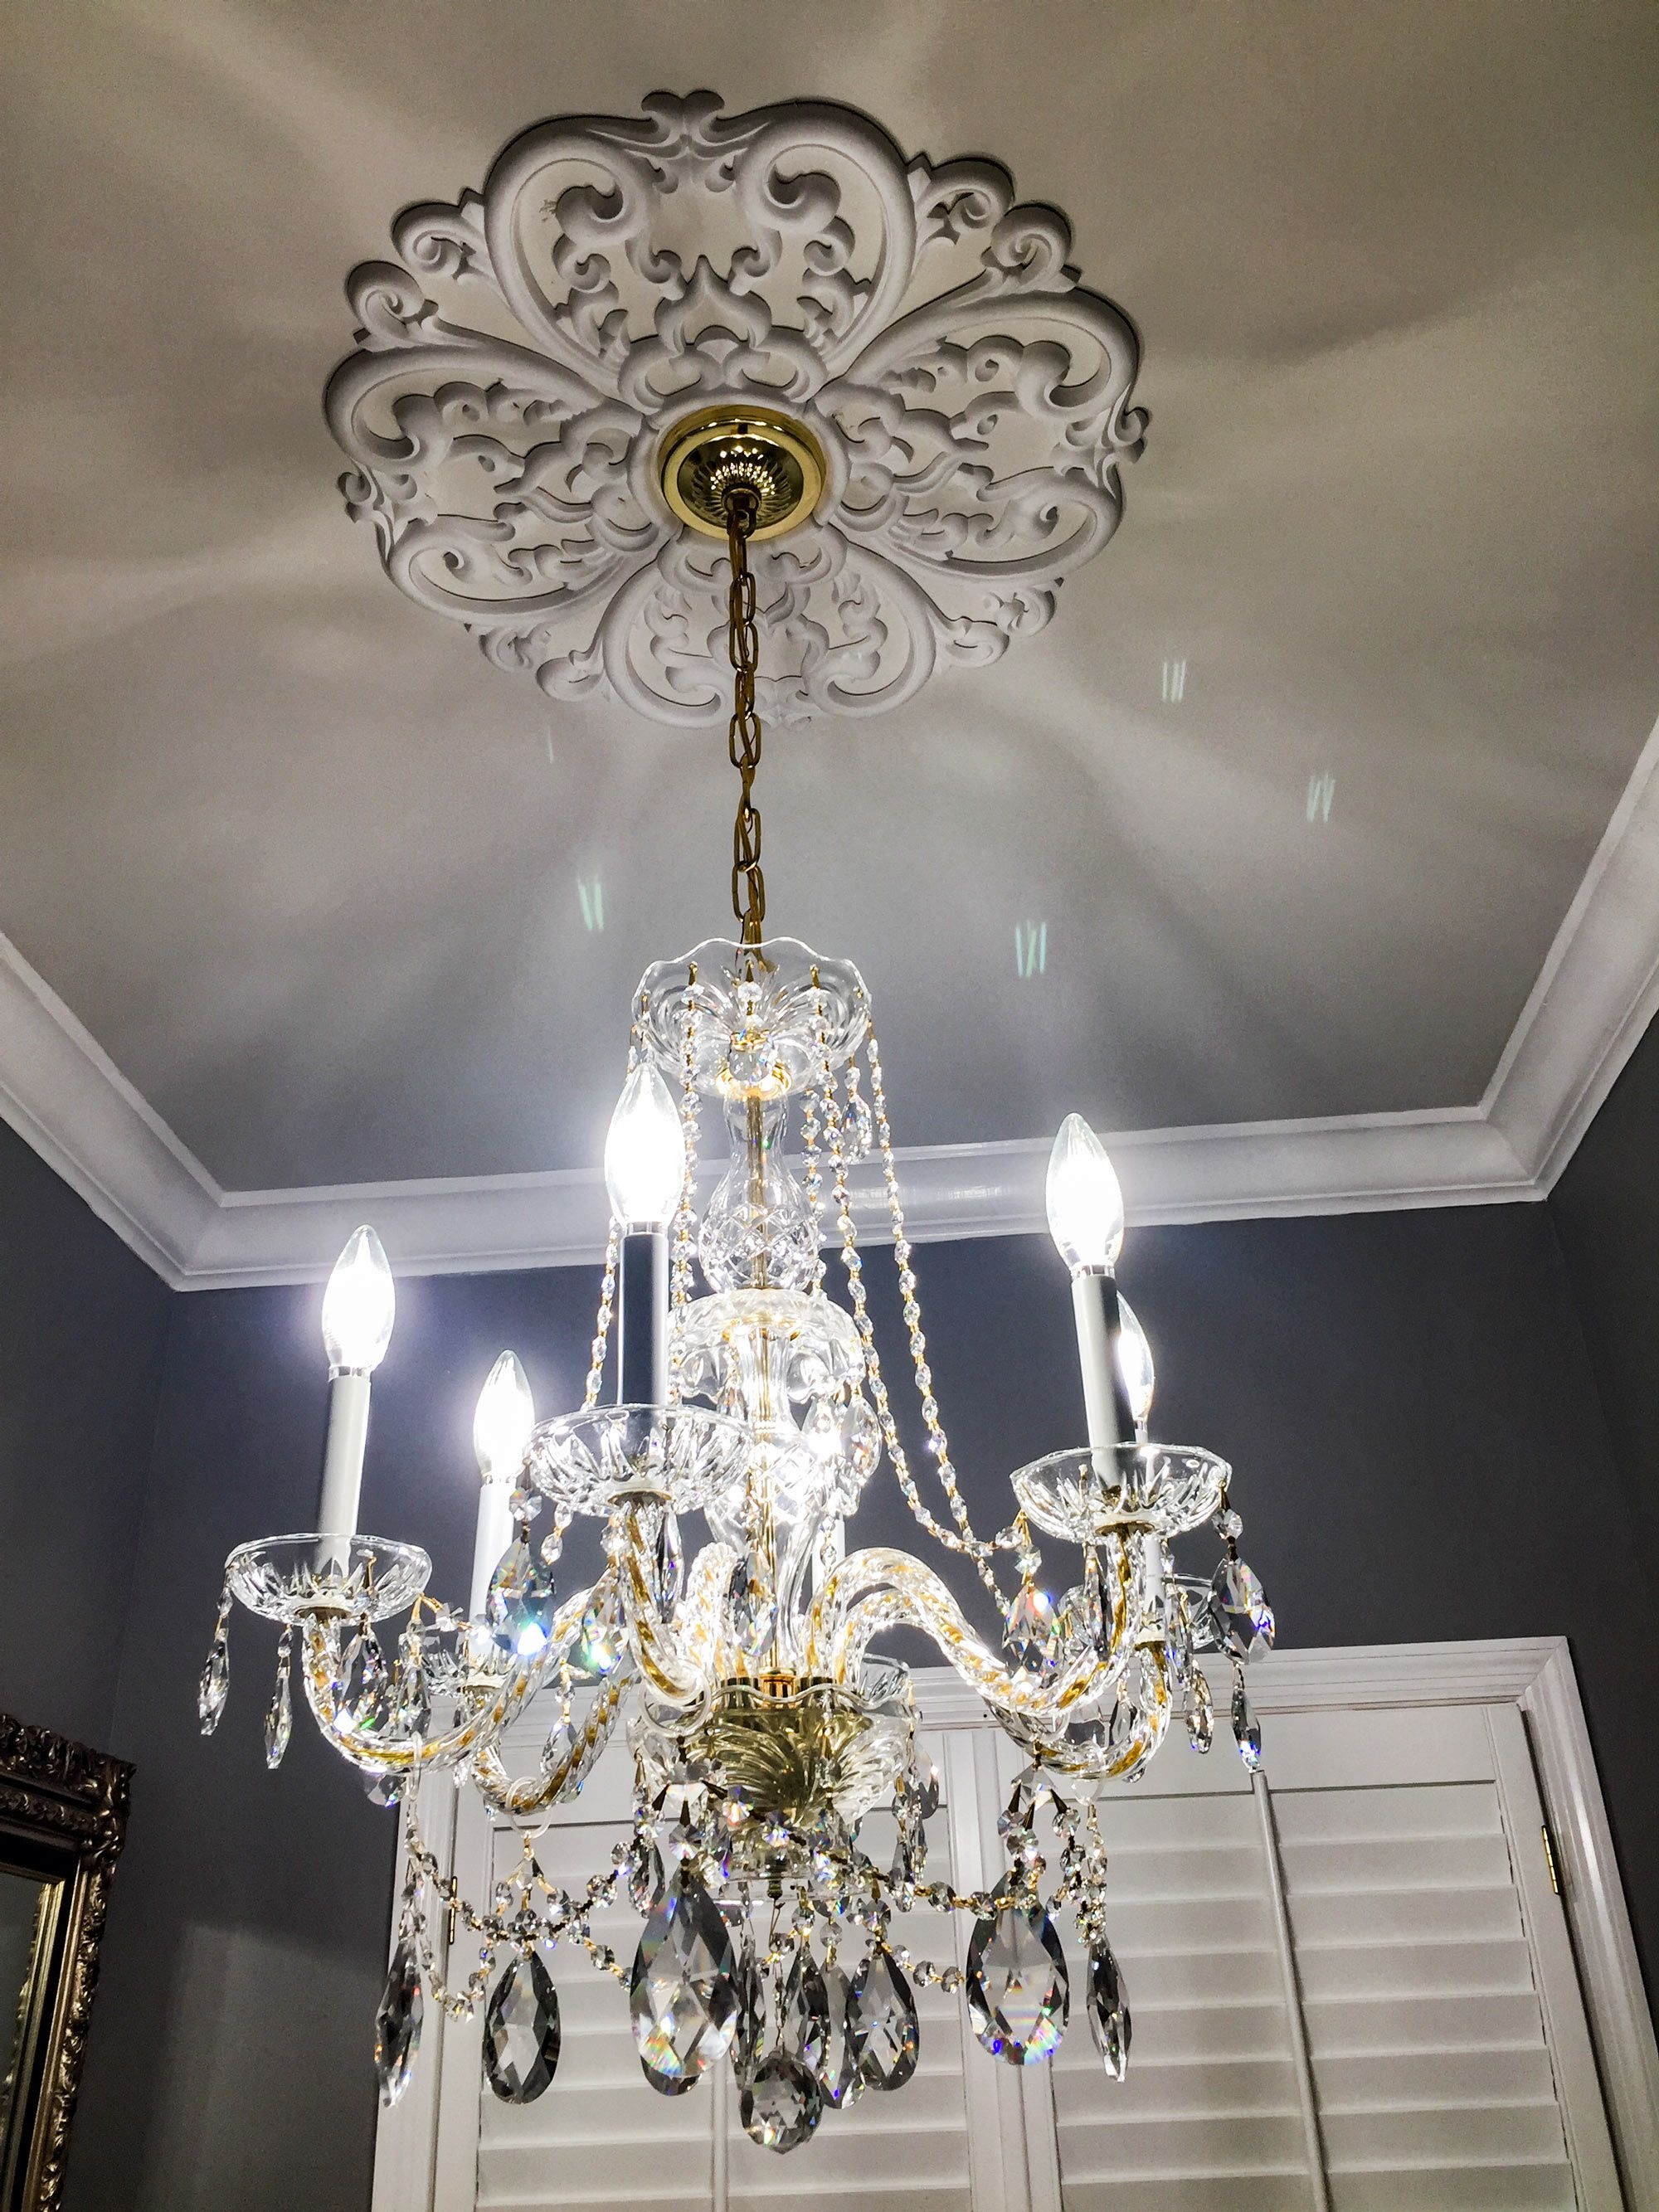 Cost to Install a Ceiling Medallion - 2019